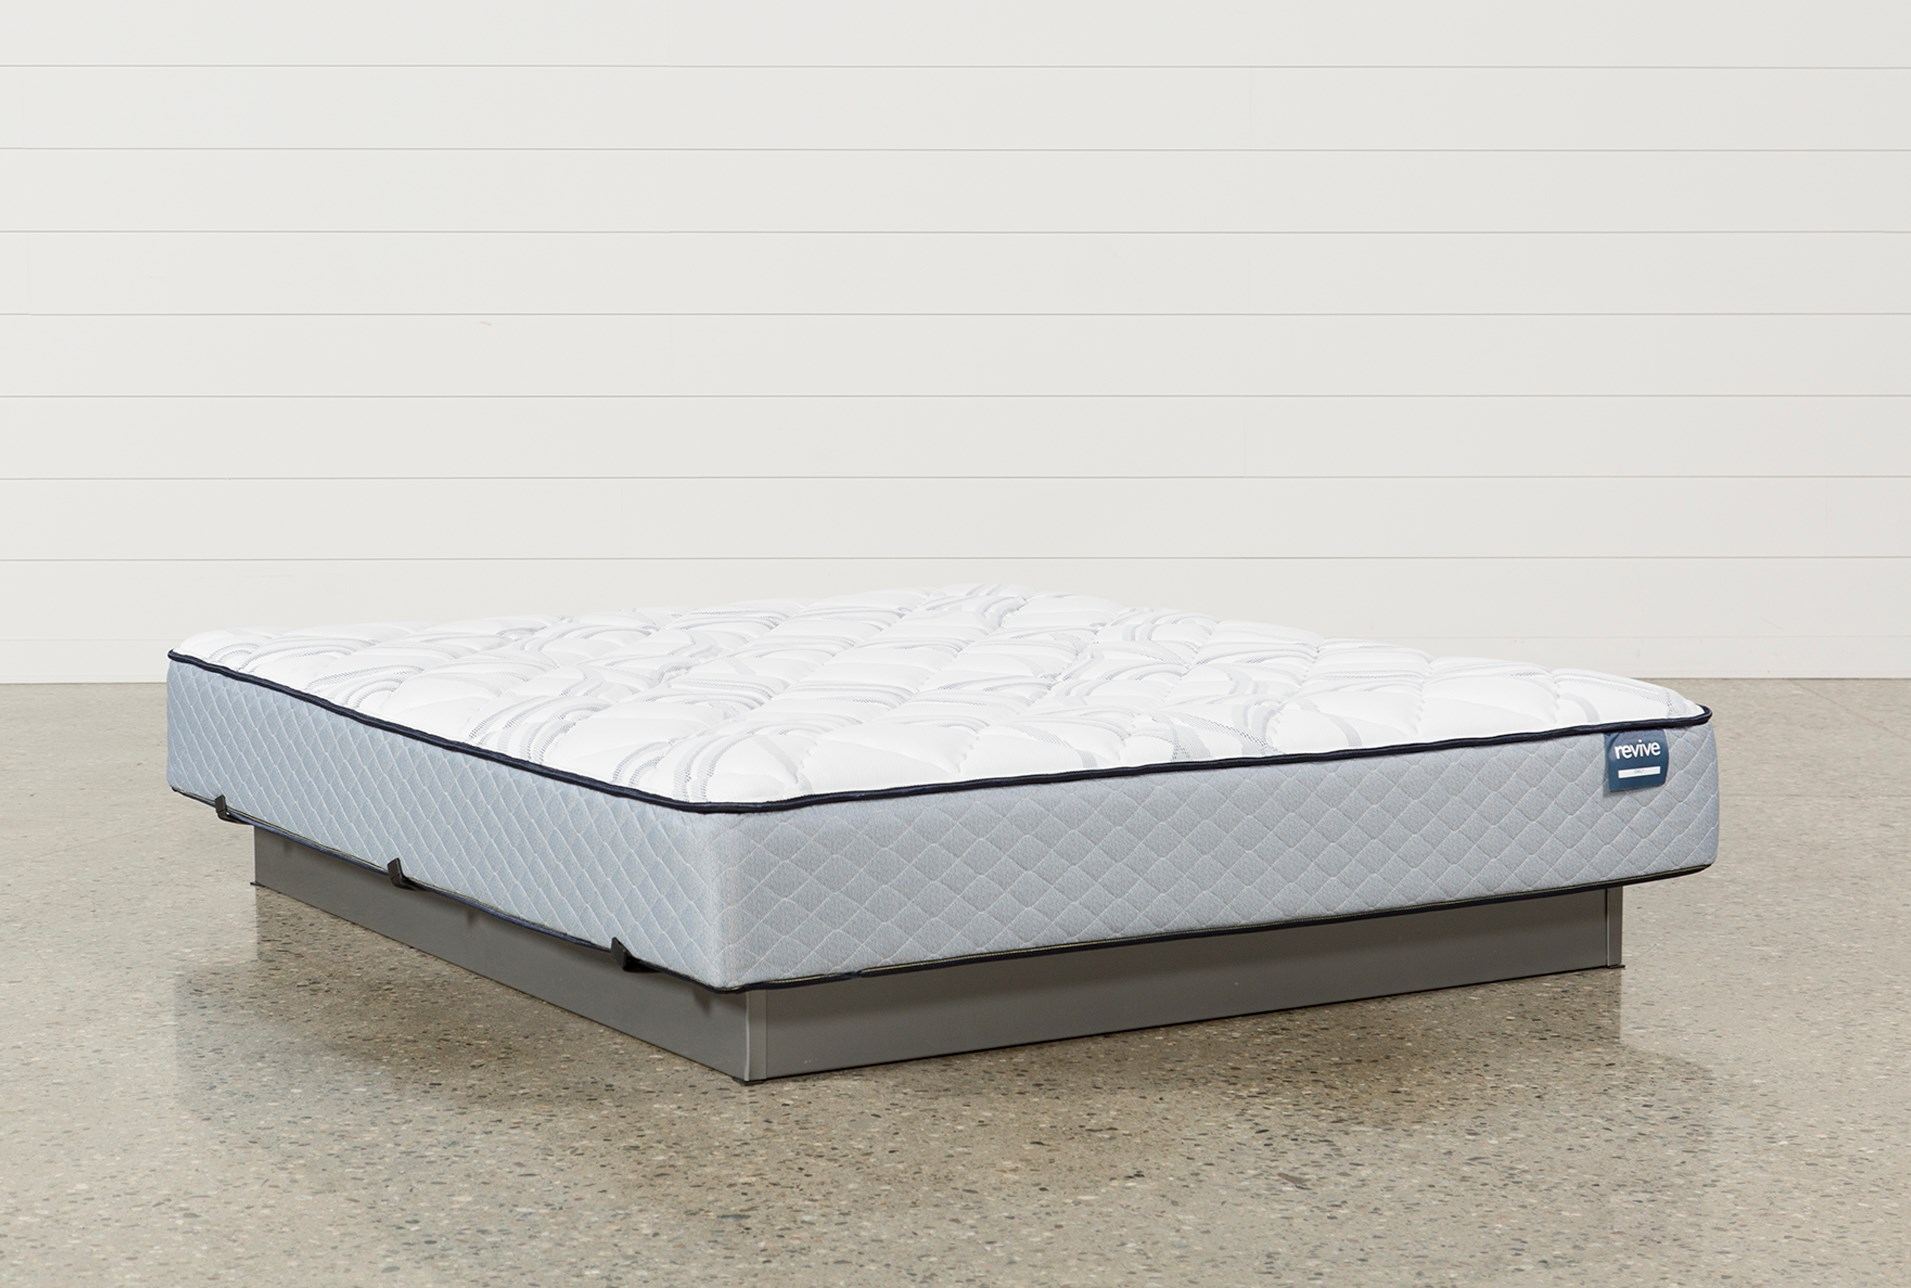 firm over that i the glad my luxury bedding process is mattress me harbor am means manufactured a bed img to by dunlopillo group all basically new sherwood